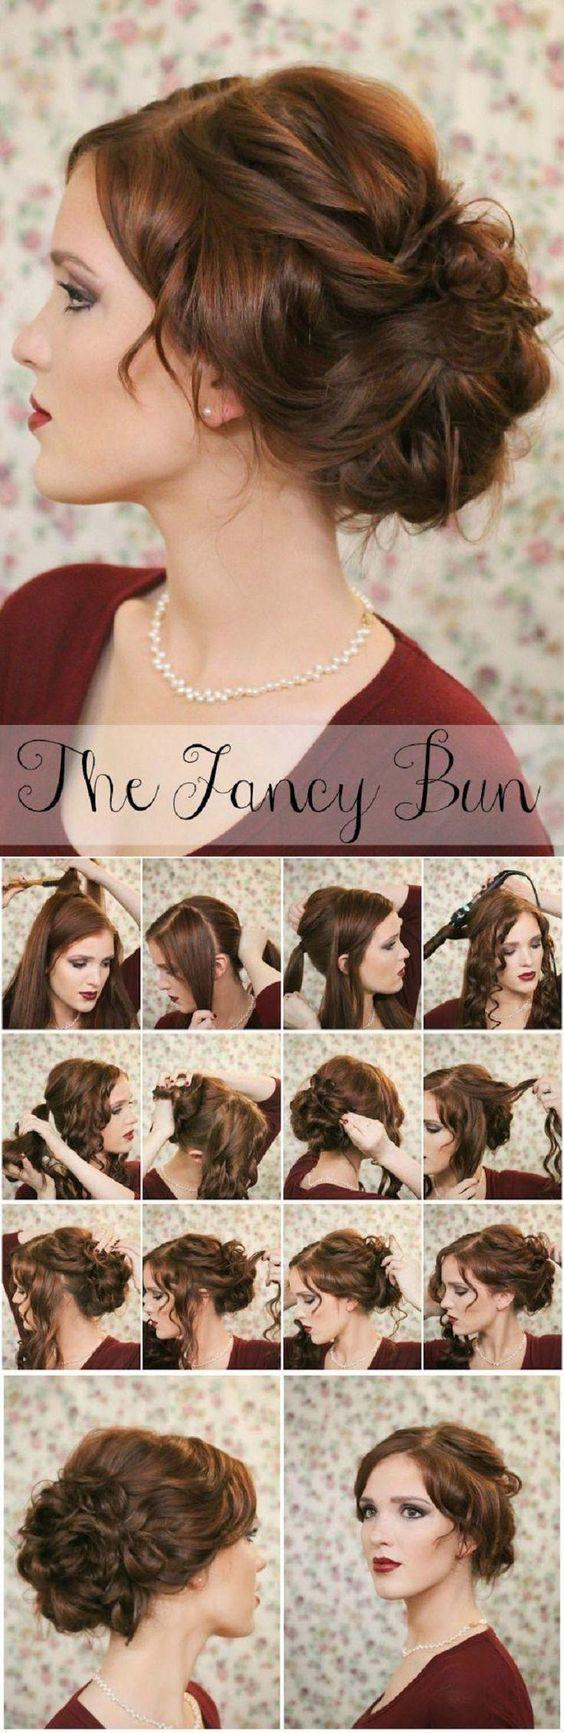 vintage diy updo wedding hairstyles